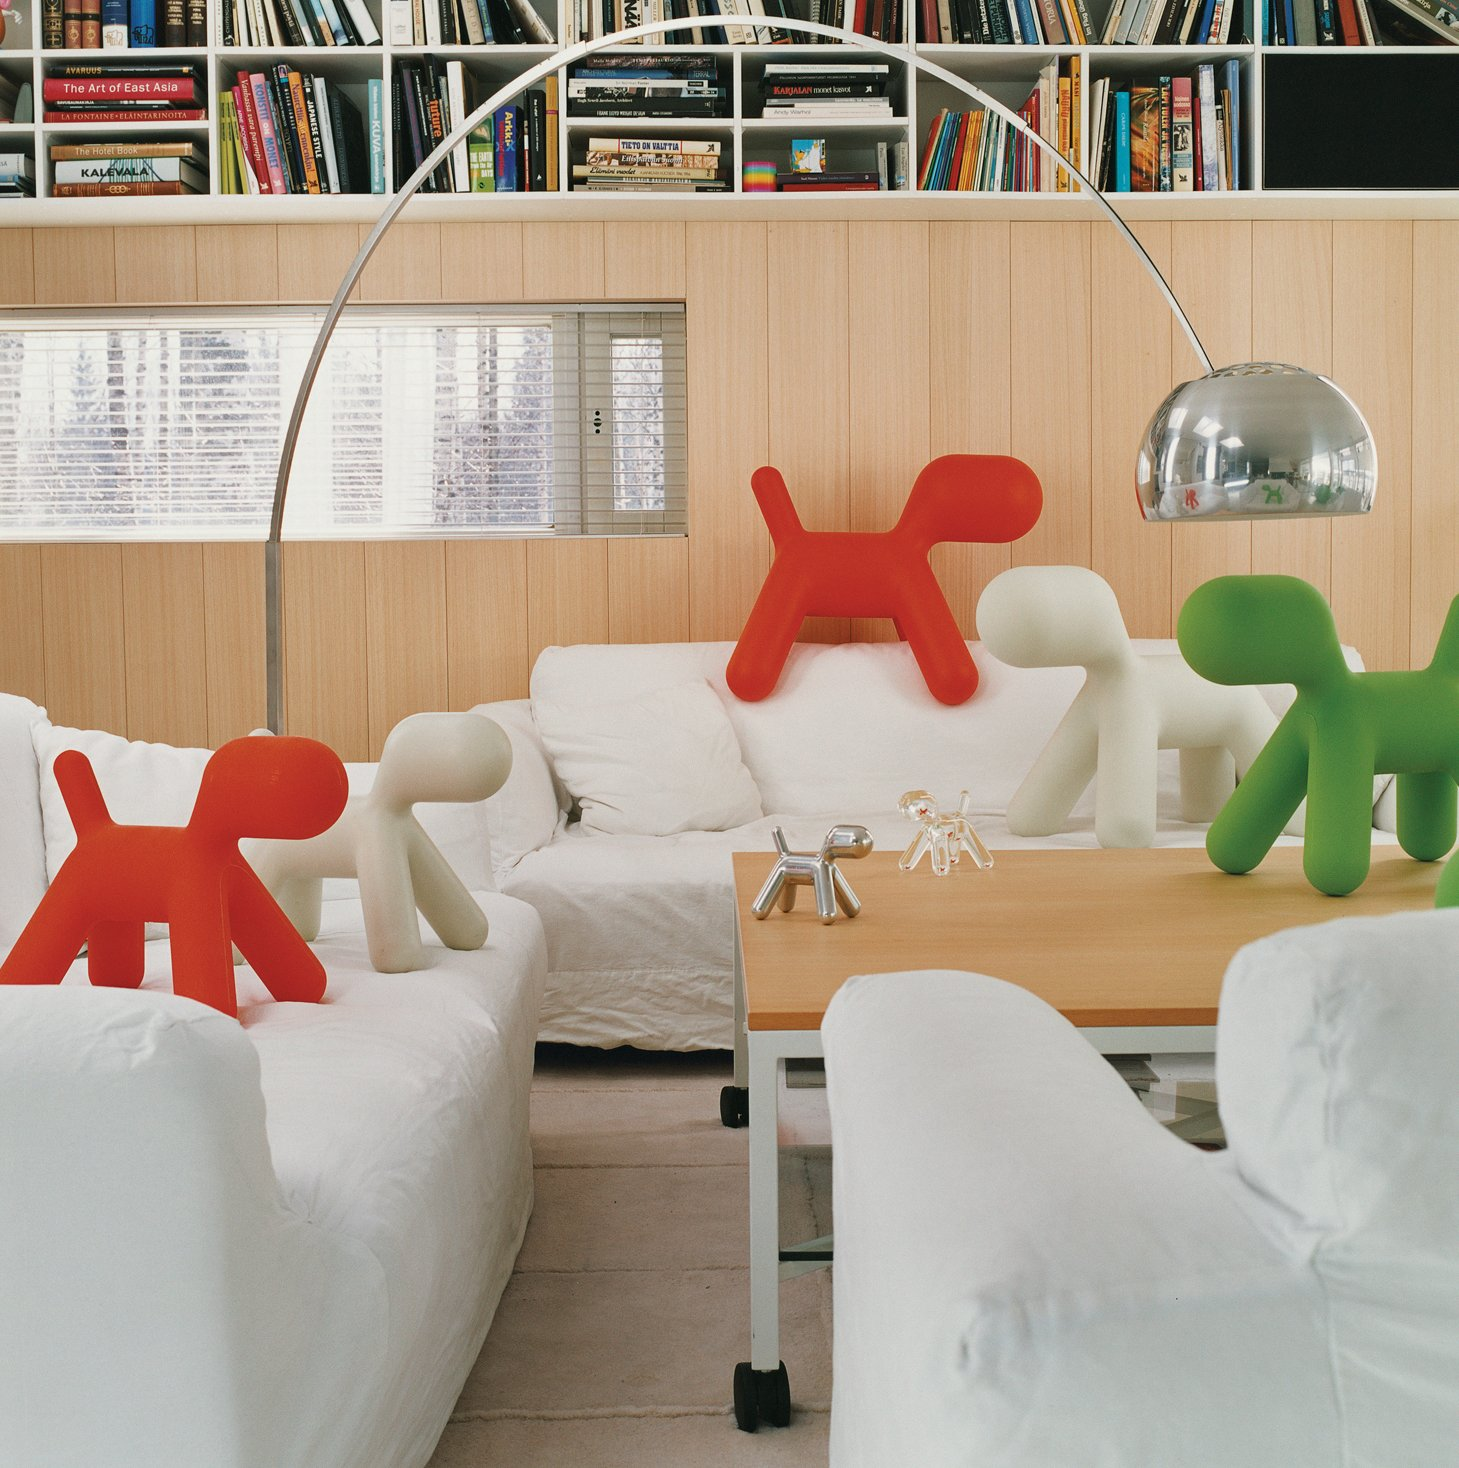 A proliferation of Puppies, Aarnio's 2005 design for Italian manufacturer Magis, gather in the living room of his Veikkola, Finland, home. Aarnio's playful spirit, evident in the iconic Ball Chair, is alive and well in his new work.  Photo 2 of 13 in Furniture Designer Focus: Eero Aarnio